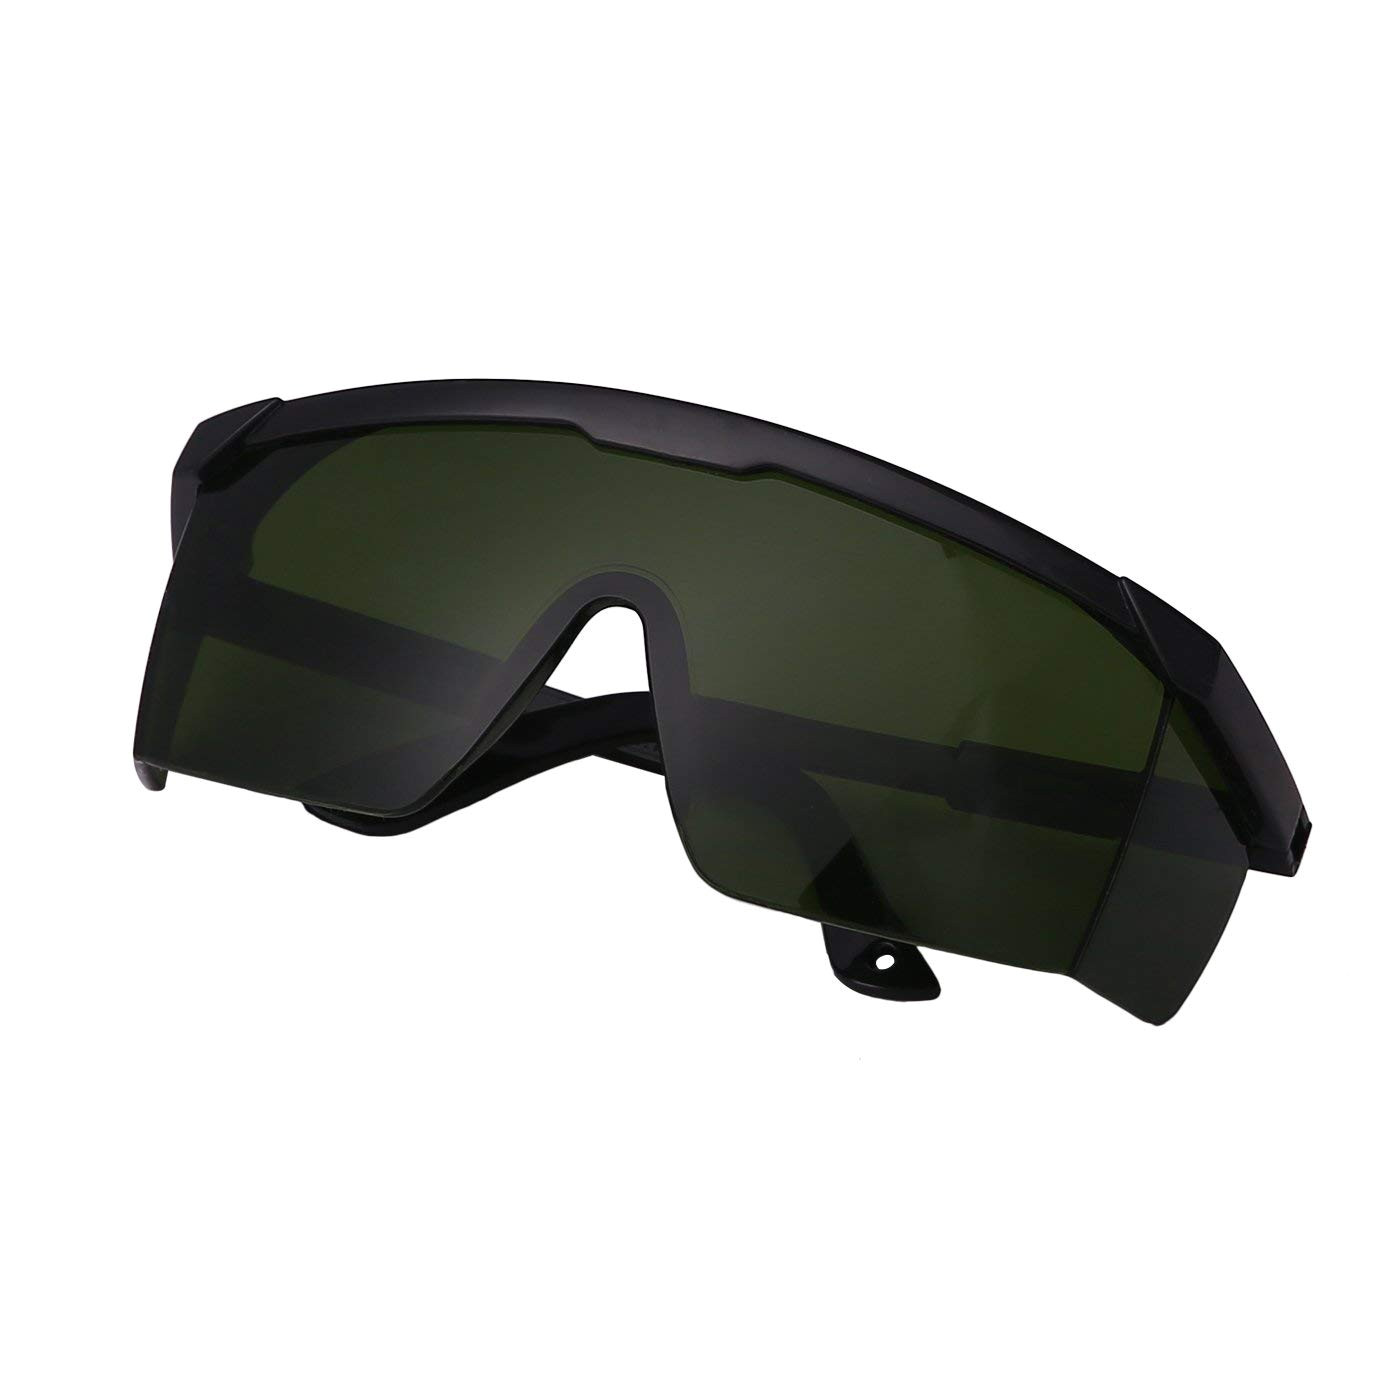 hde laser eye protection safety glasses for green and blue lasers with case green amazon ca sports outdoors